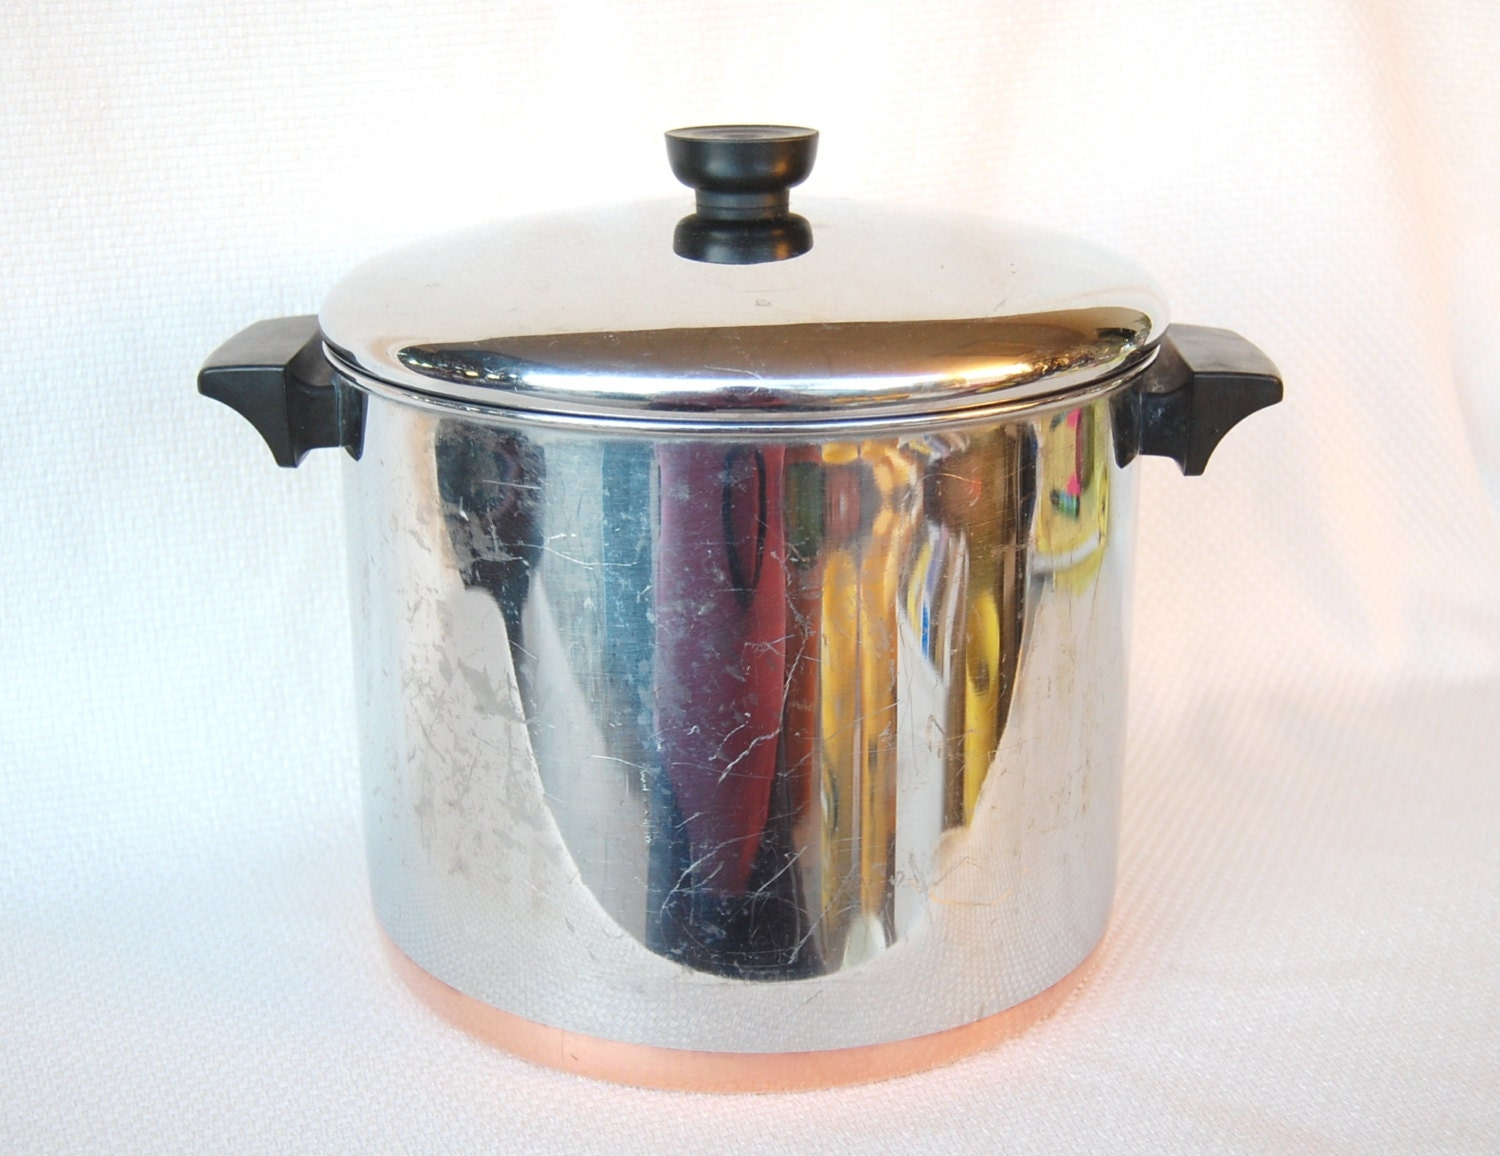 Vintage Revere Ware 8 Quart Stockpot Copper Clad Stainless